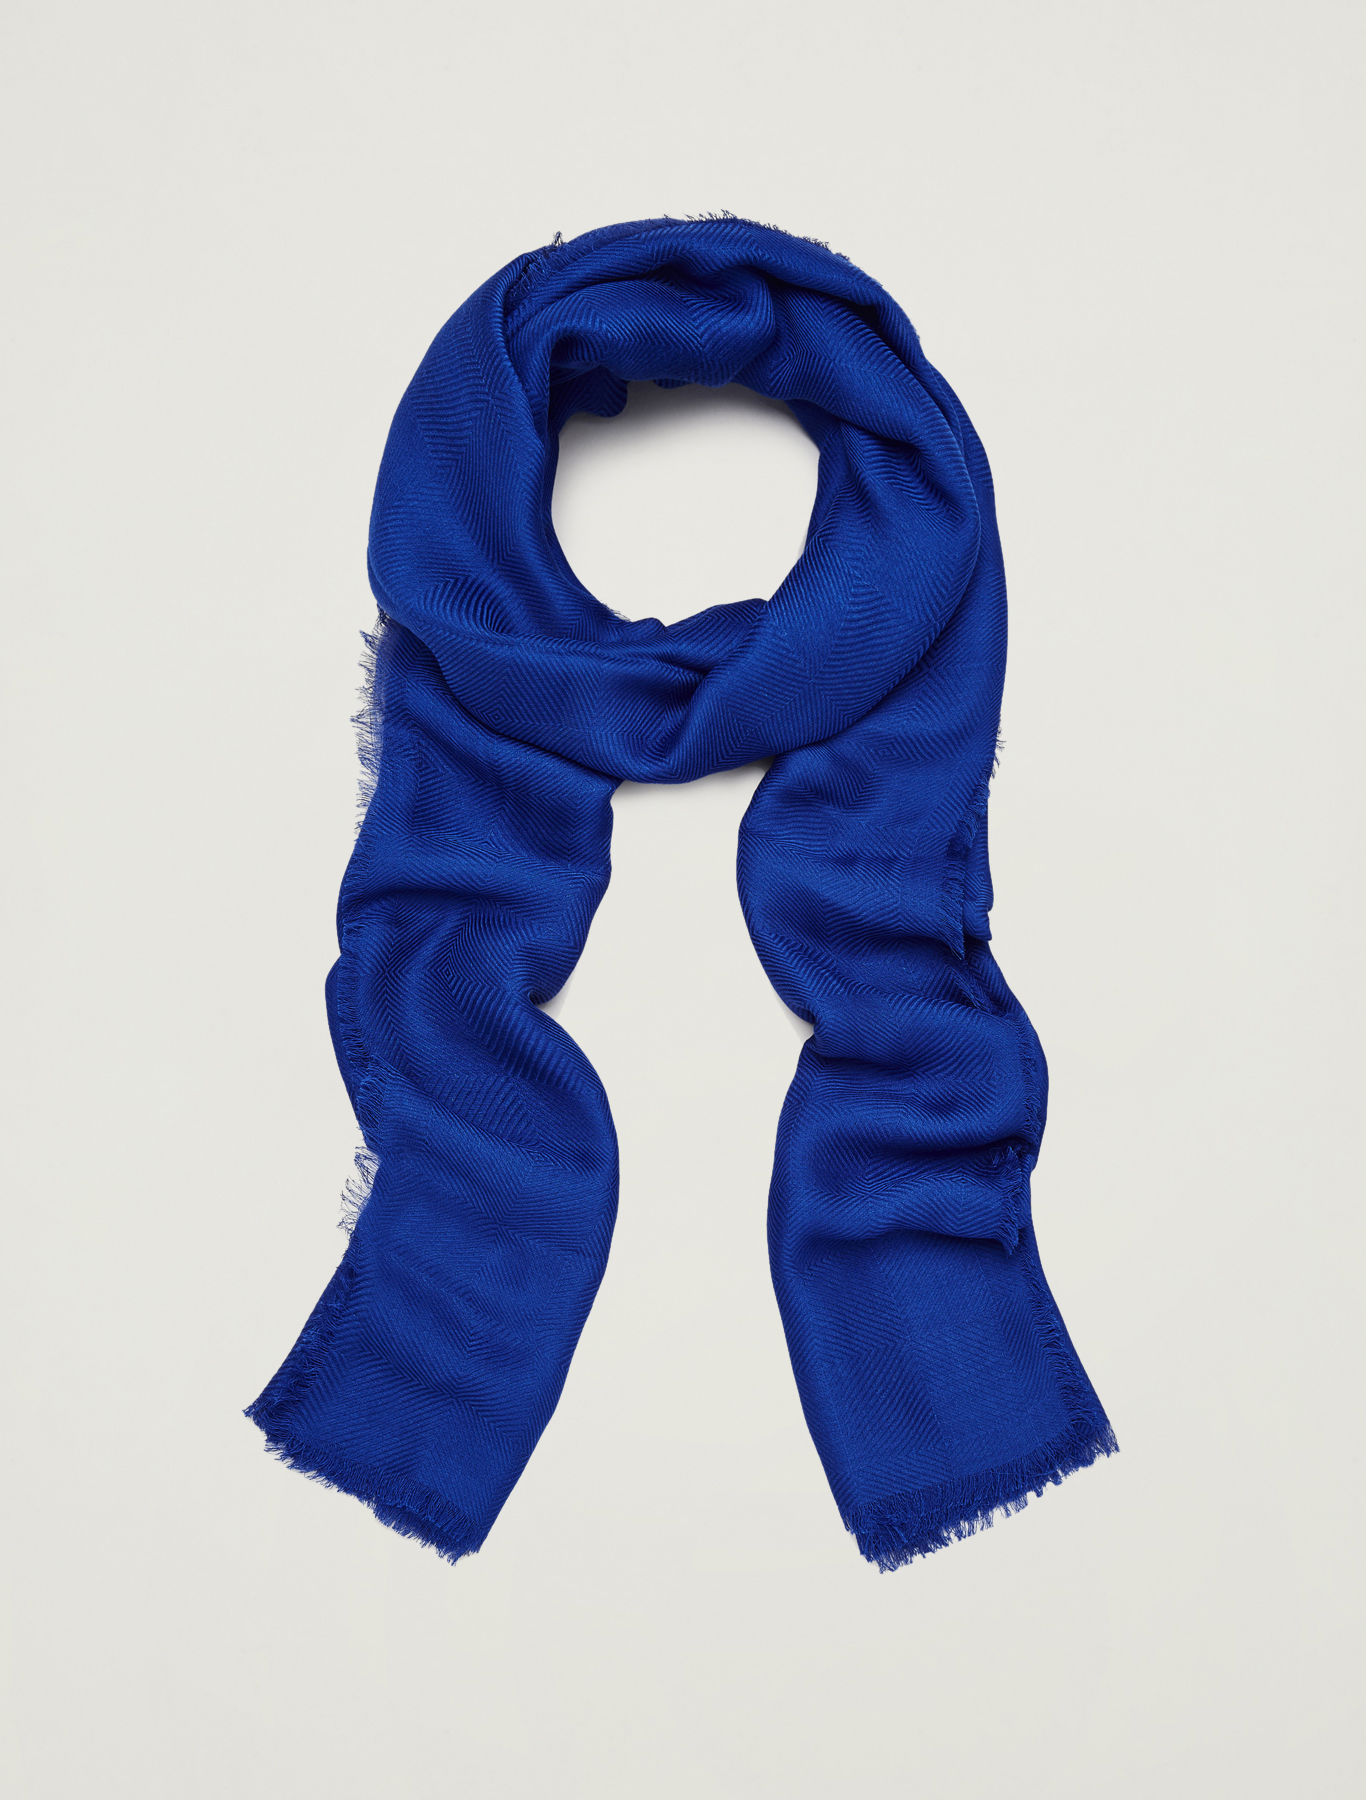 Geometric textured stole - cornflower blue - pennyblack